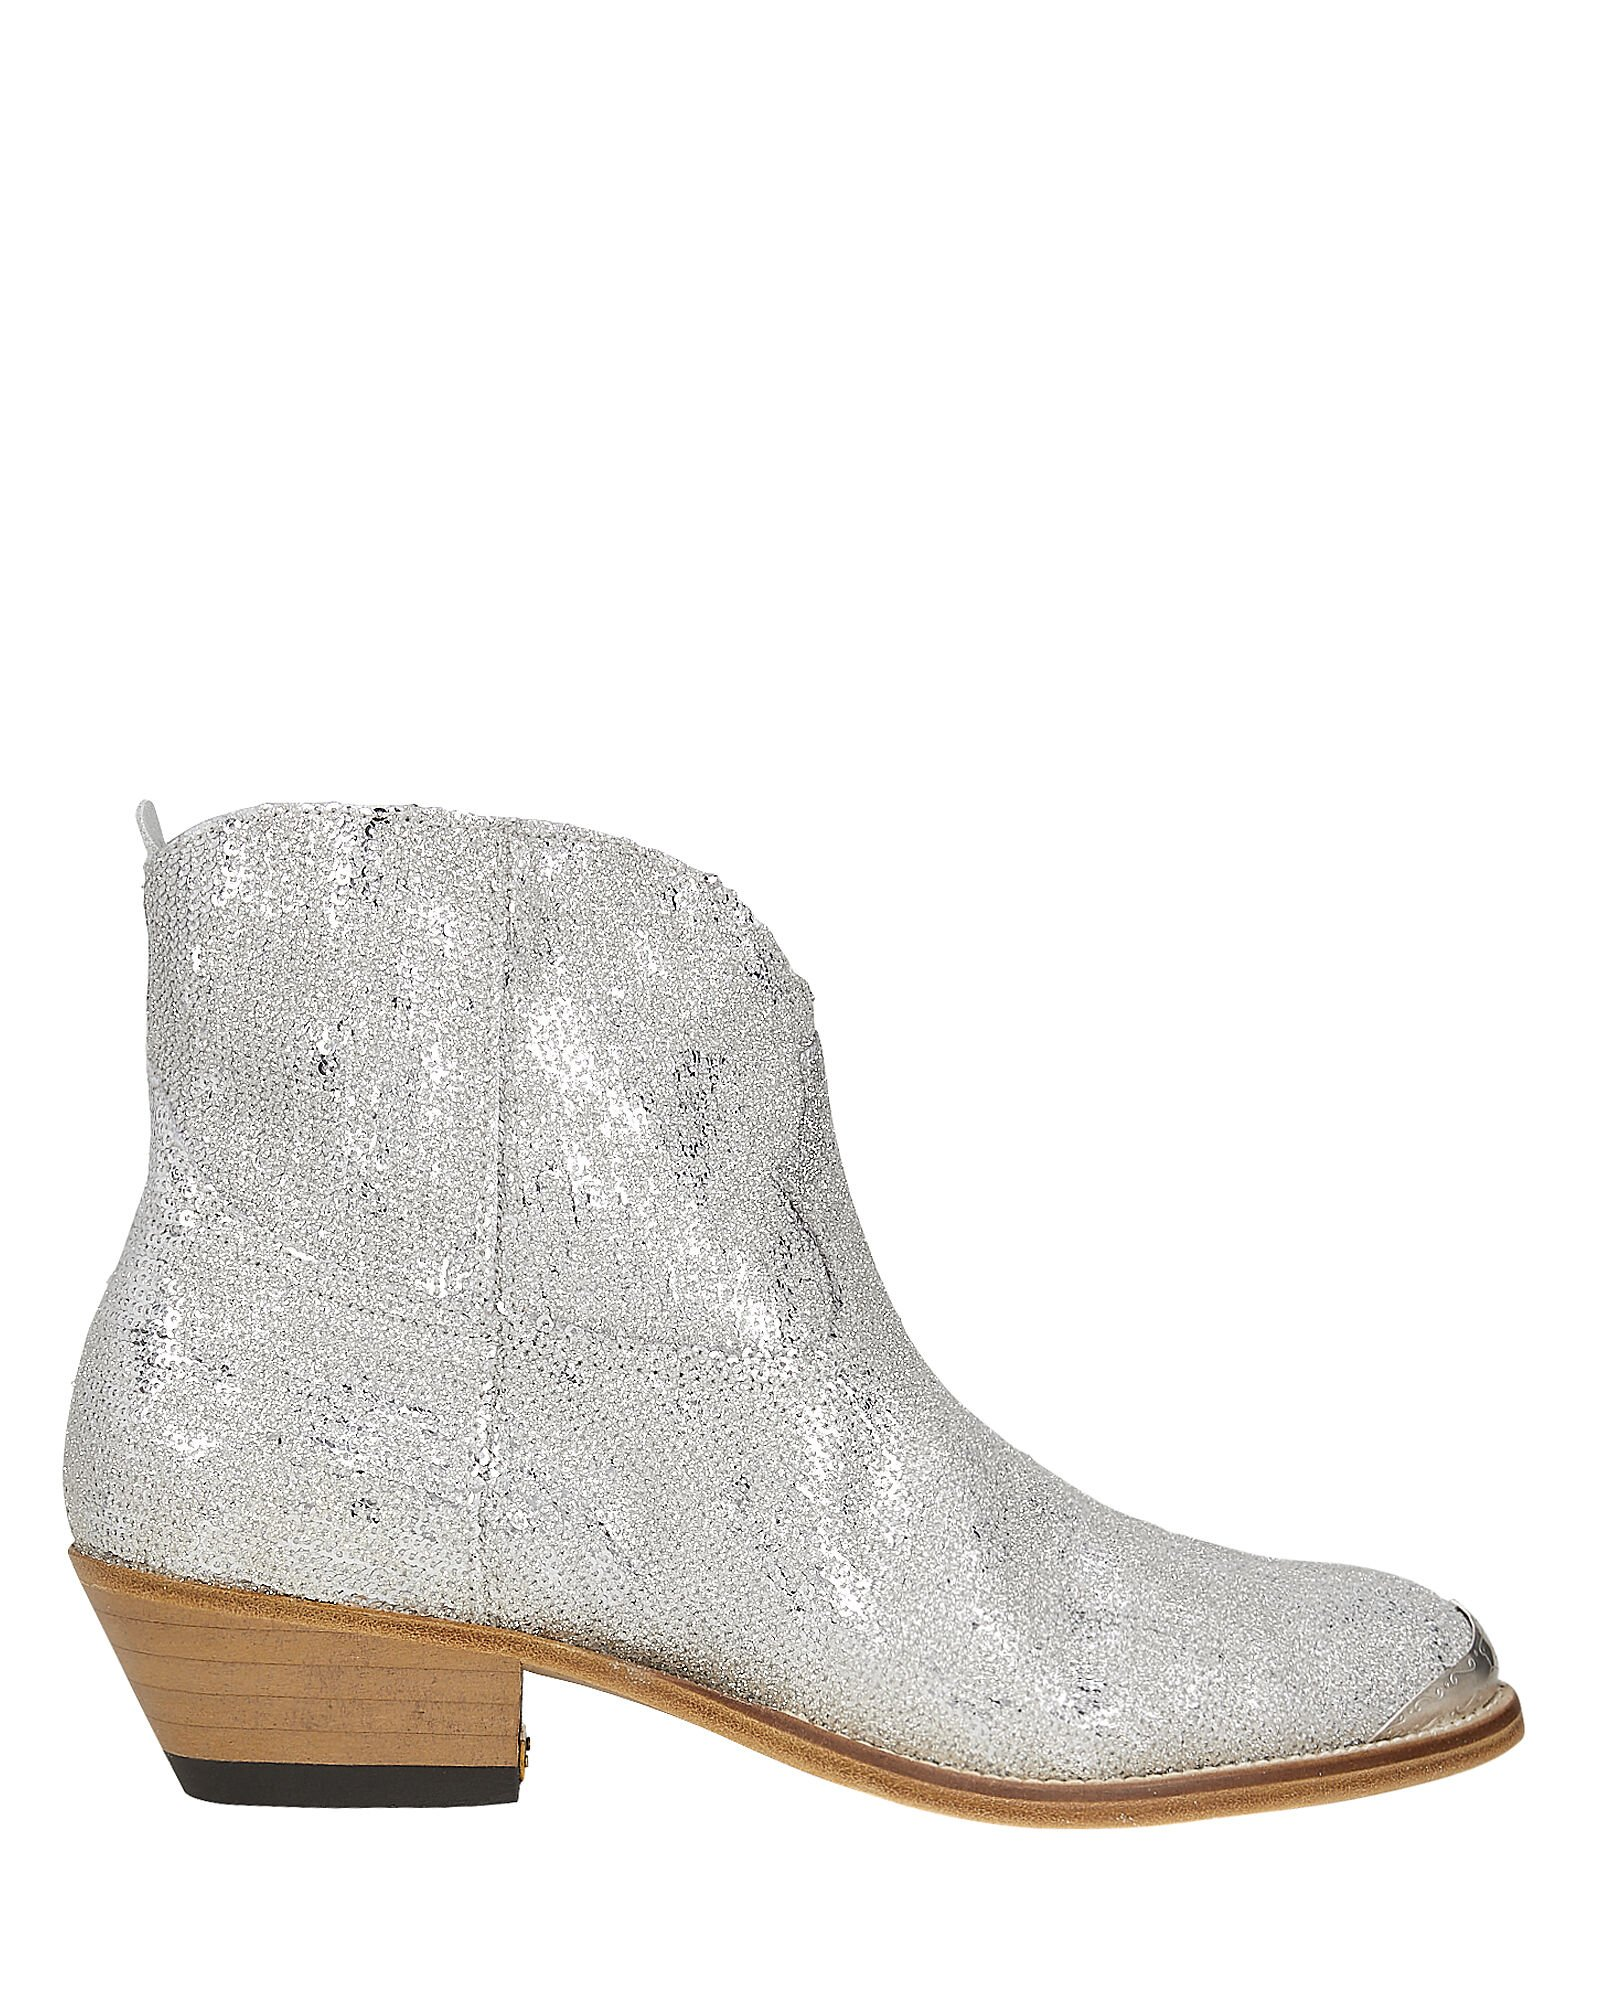 Young Sparkles Sequined Western Boots, SILVER, hi-res